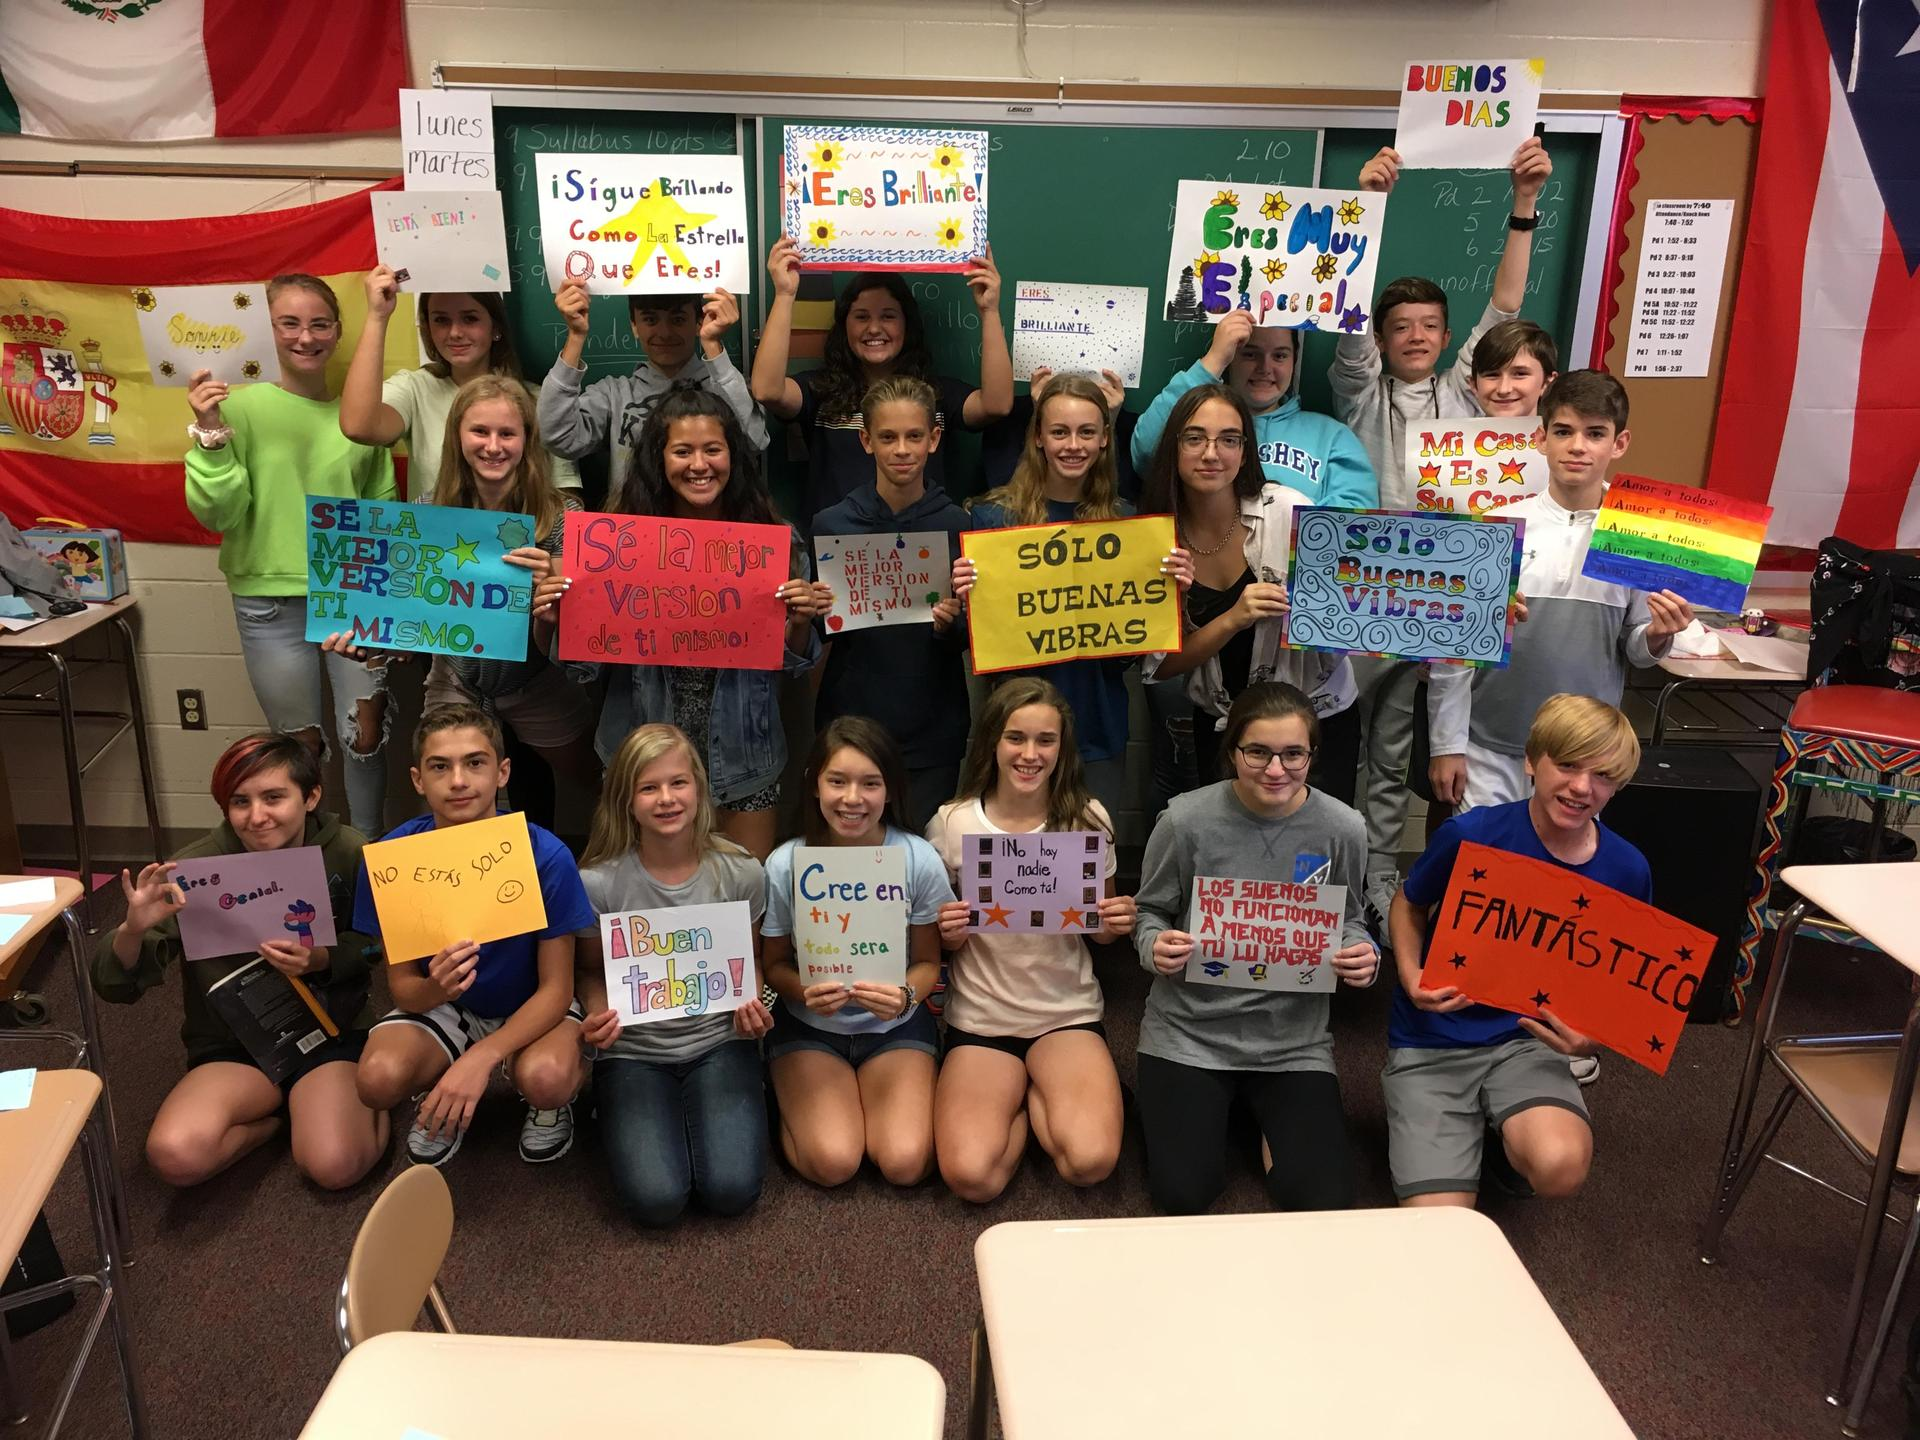 Spanish students with positive posters in Spanish